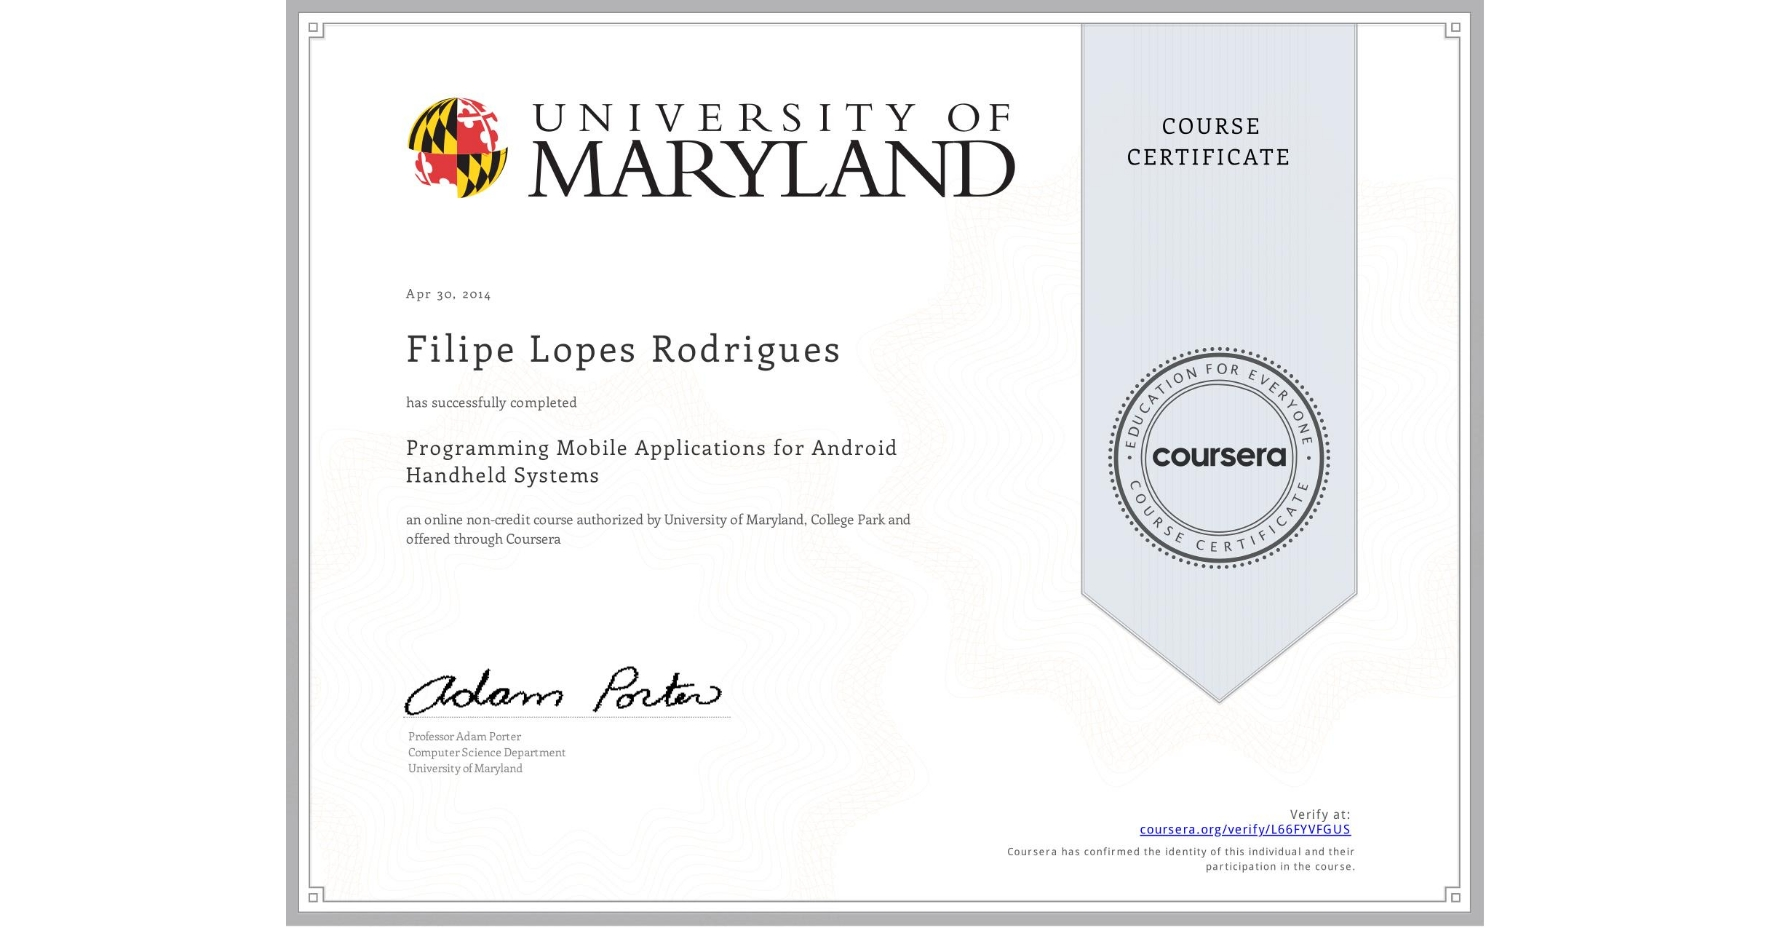 View certificate for Filipe Lopes Rodrigues, Programming Mobile Applications for Android Handheld Systems, an online non-credit course authorized by University of Maryland, College Park and offered through Coursera